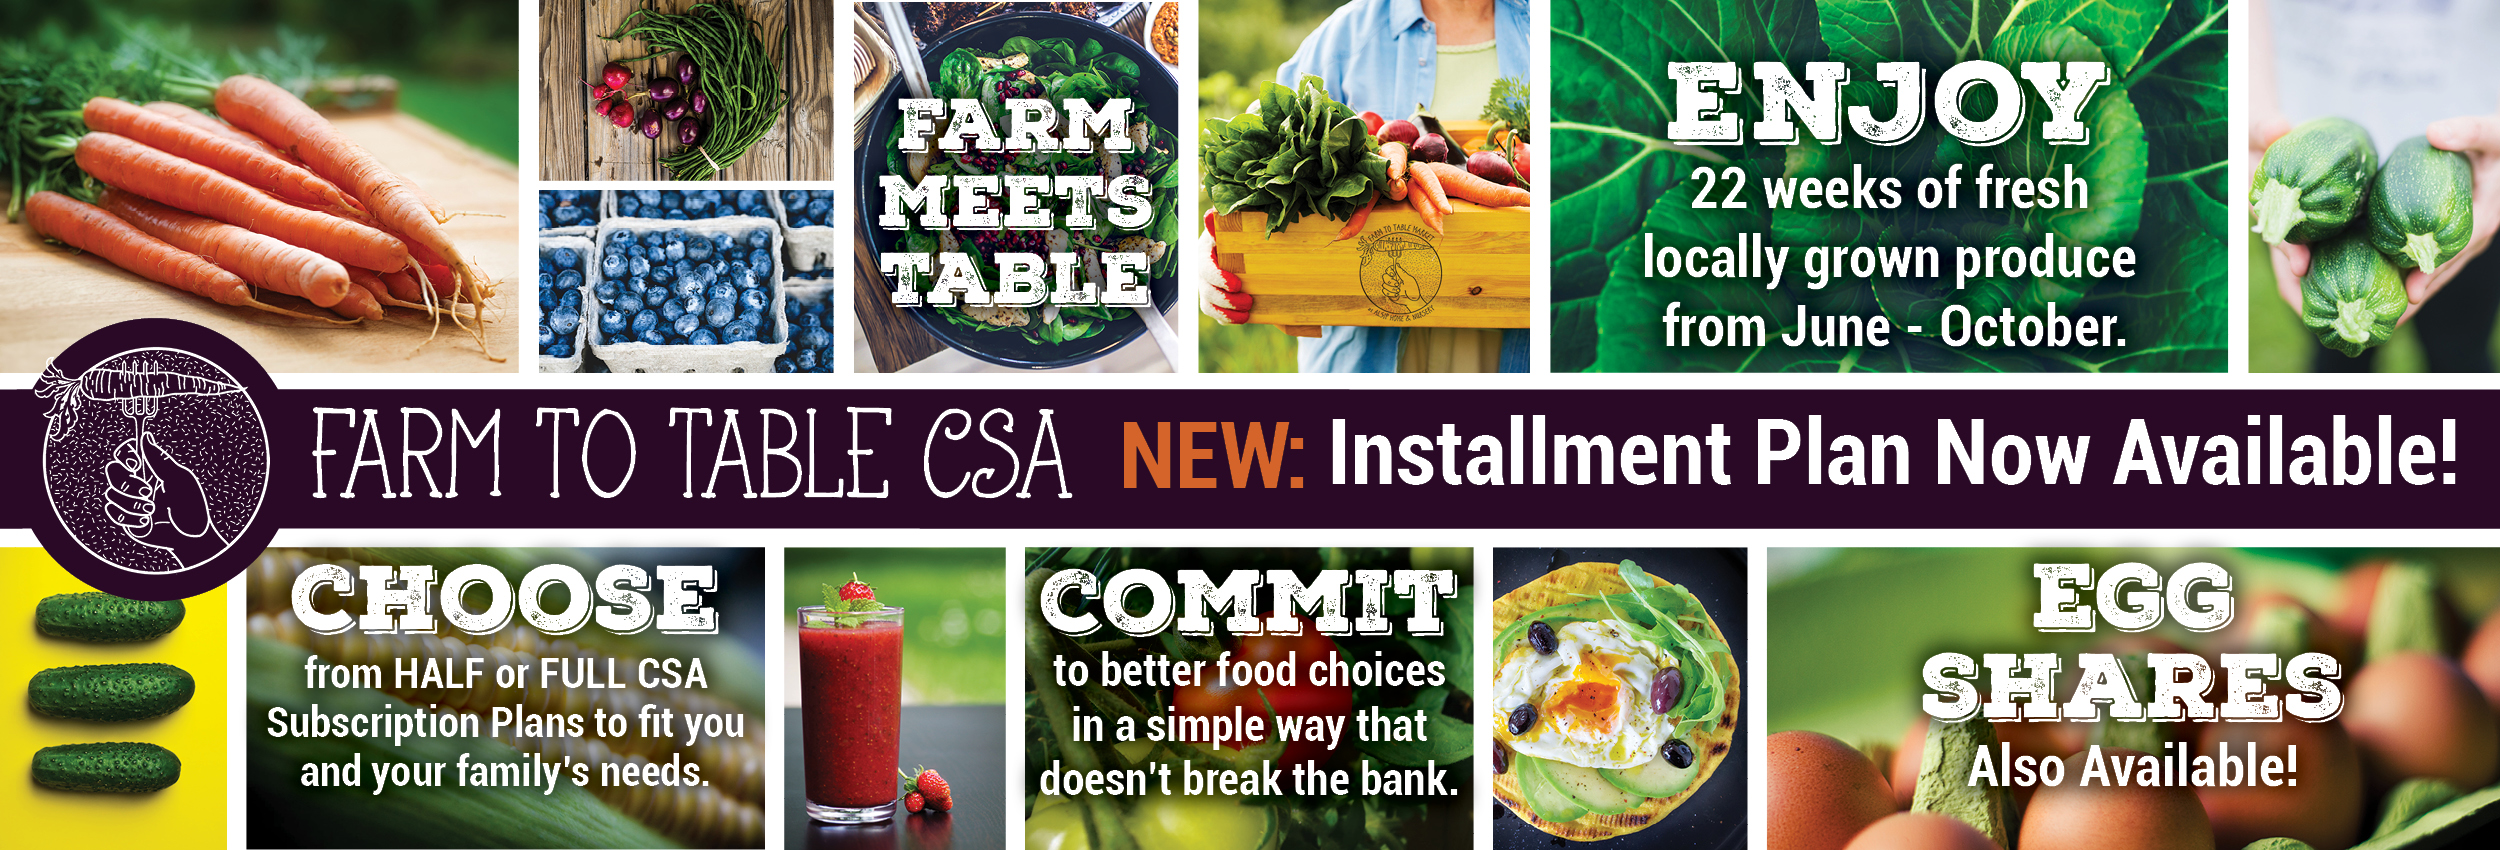 Alsip Home & Nursery Farm to Table Market Community Supported Agriculture Program